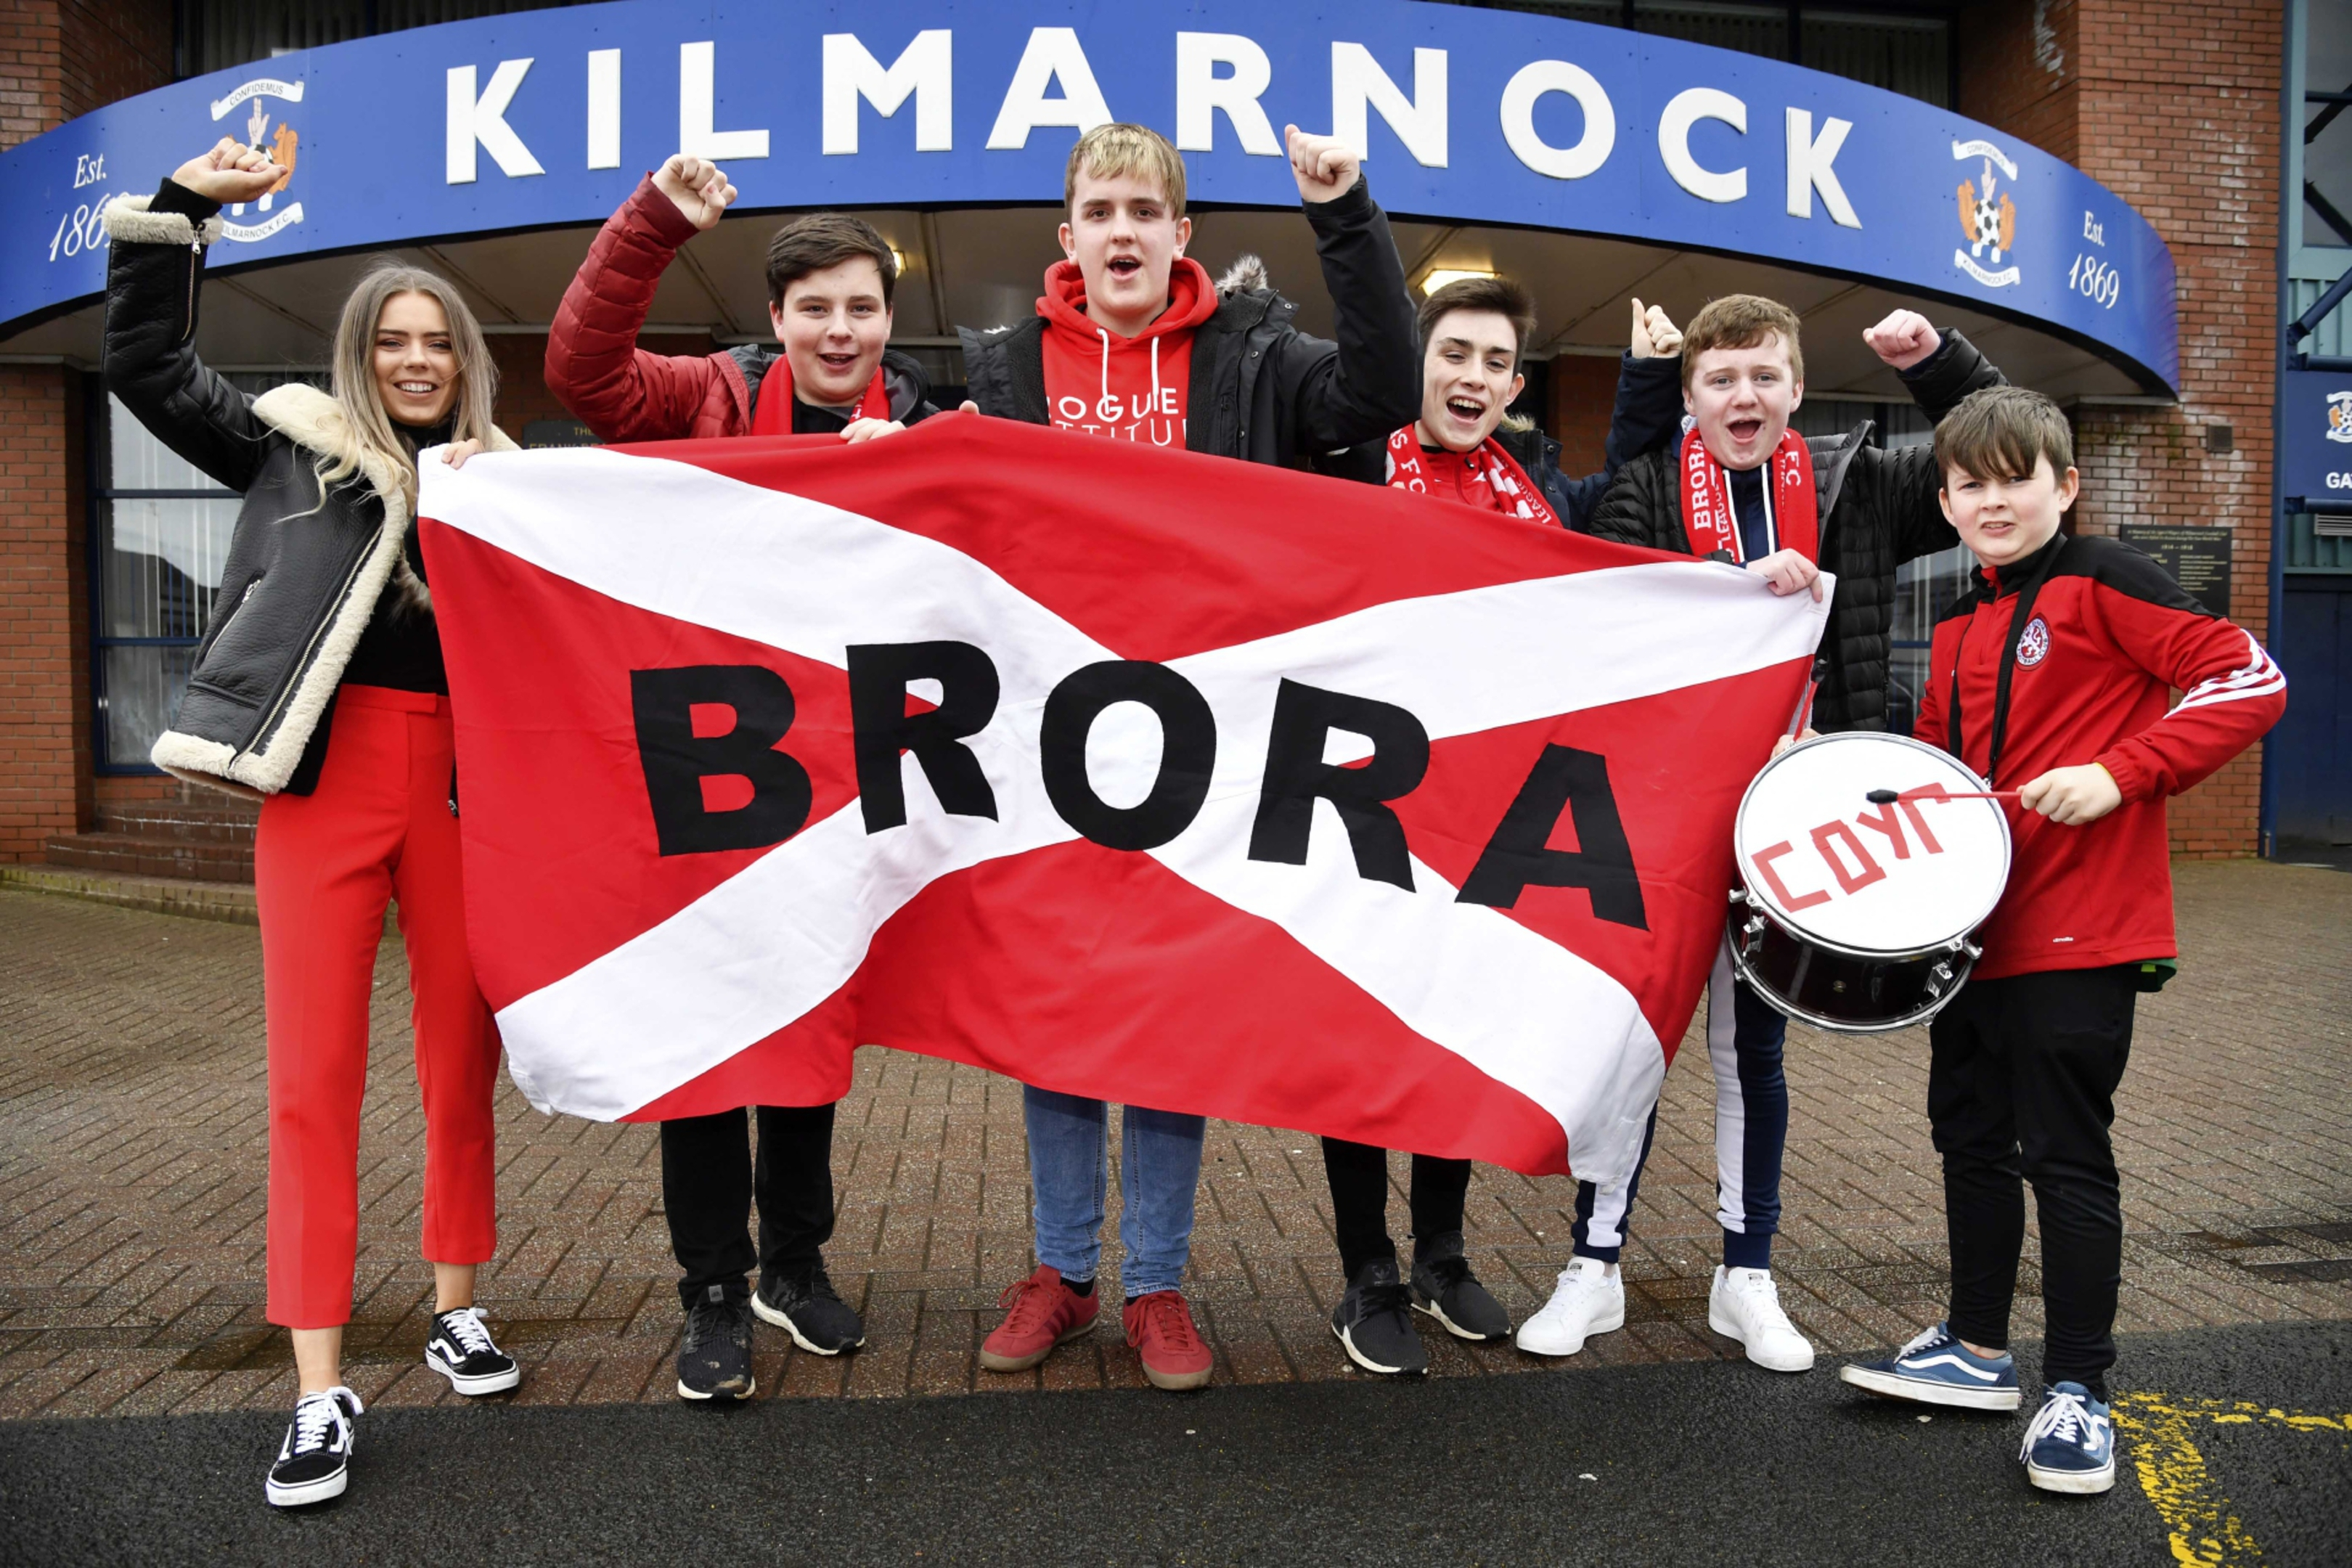 Brora Rangers fans ahead of the trip to Kilmarnock in 2018.